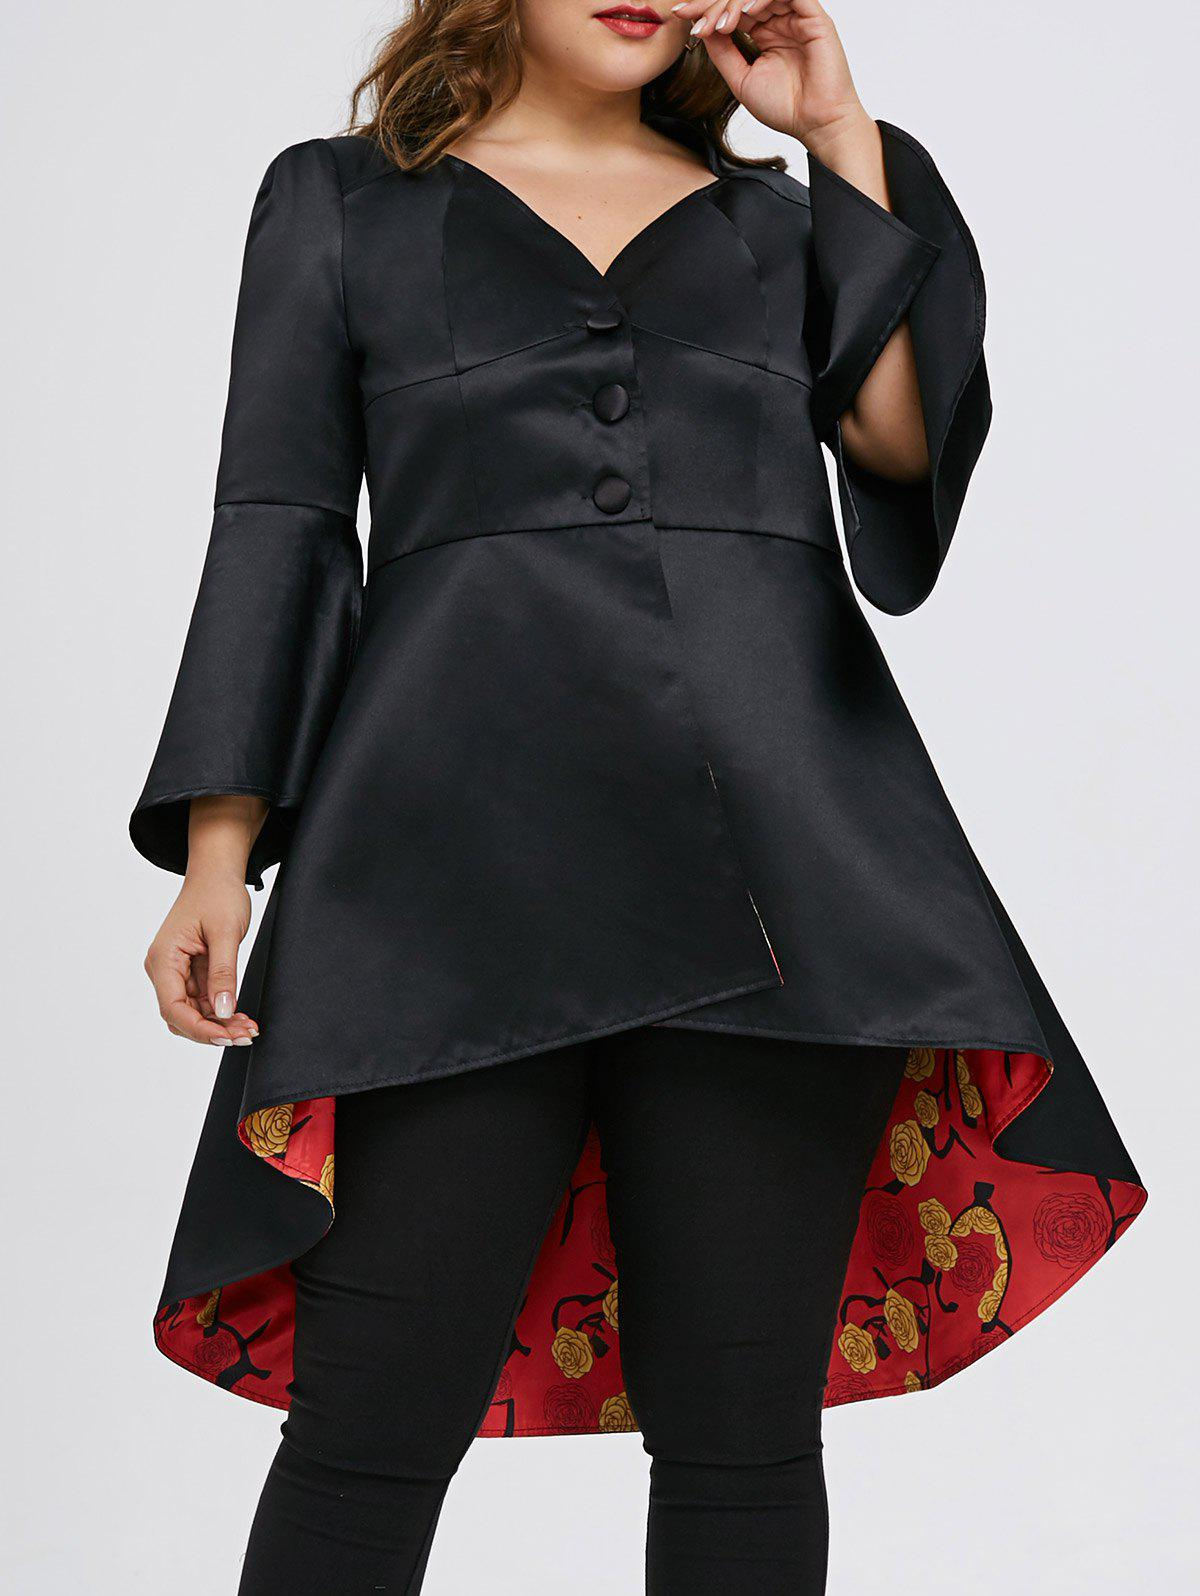 f31d7cd57f449 2019 High Low Lace Up Plus Size Skirted Coat